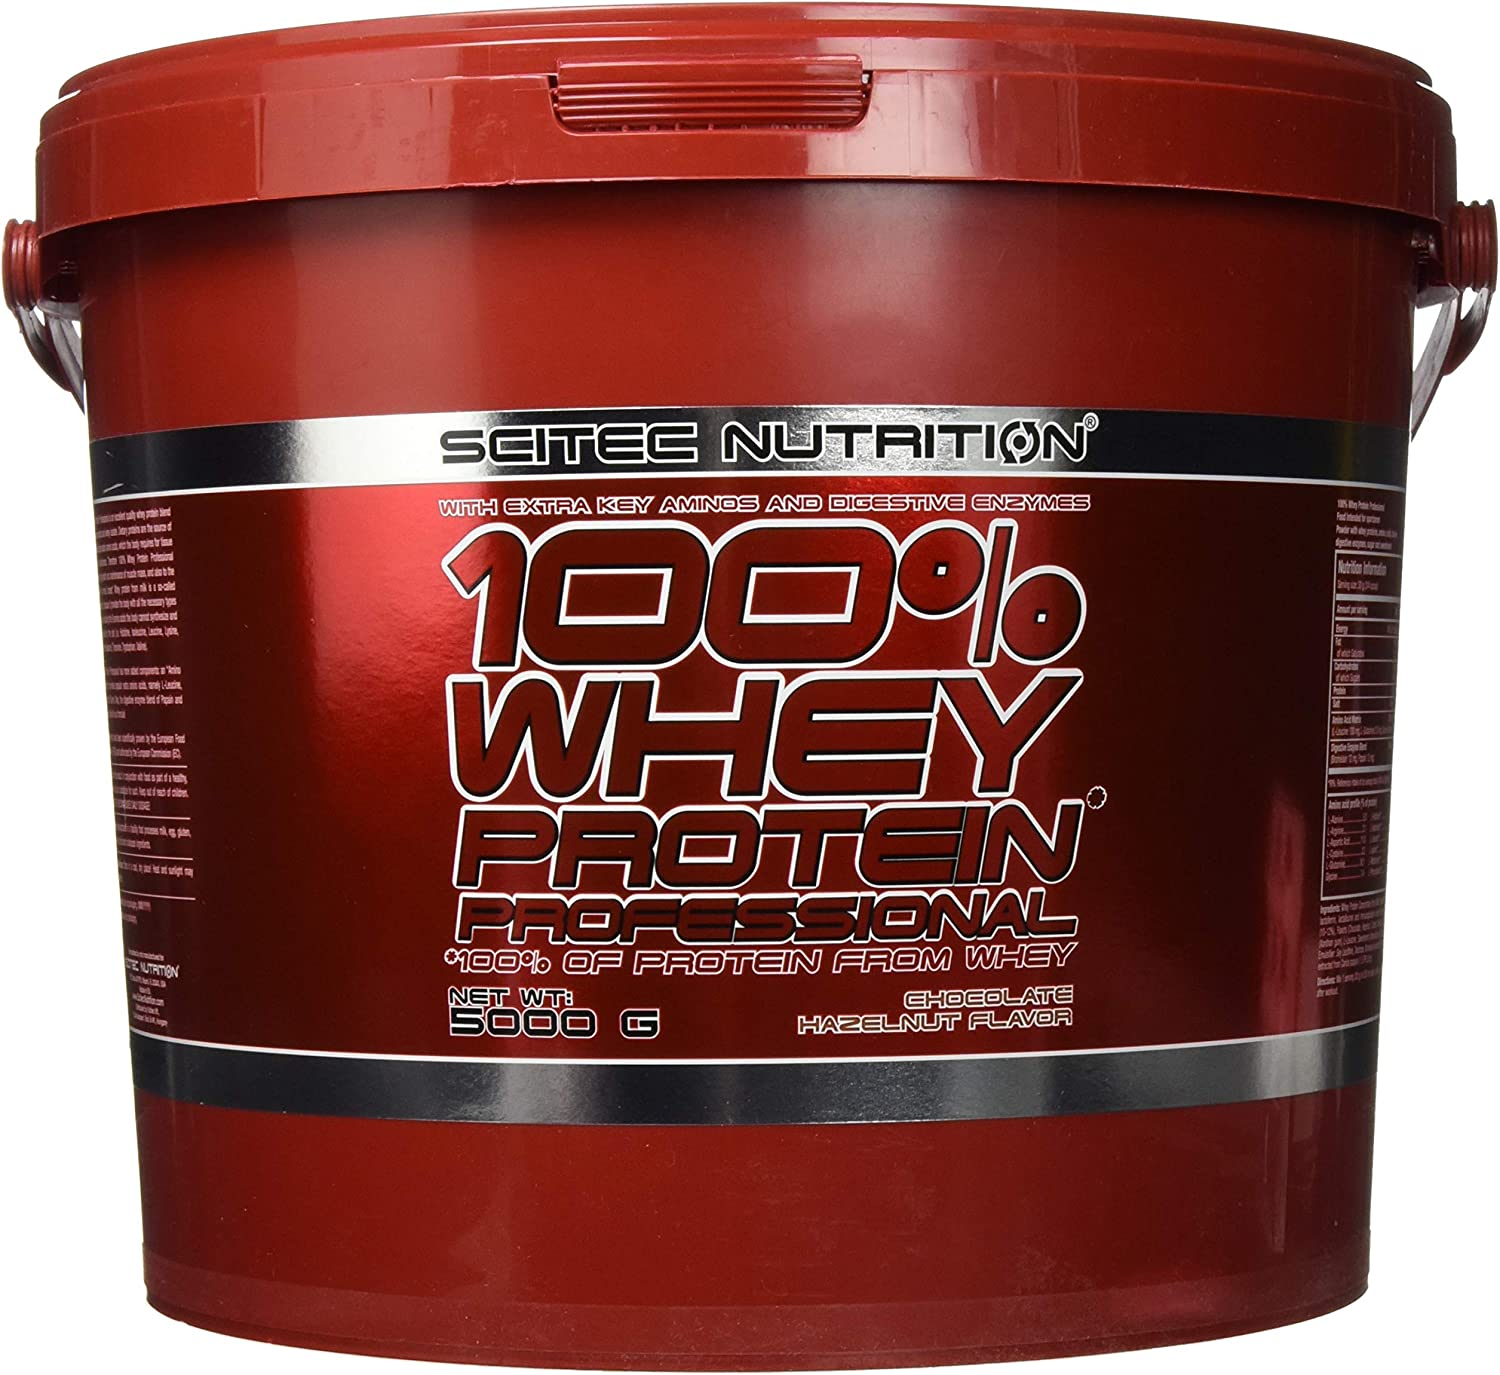 Scitec Nutrition - 100% whey protein professional, 5000g sabor chocolate avellana